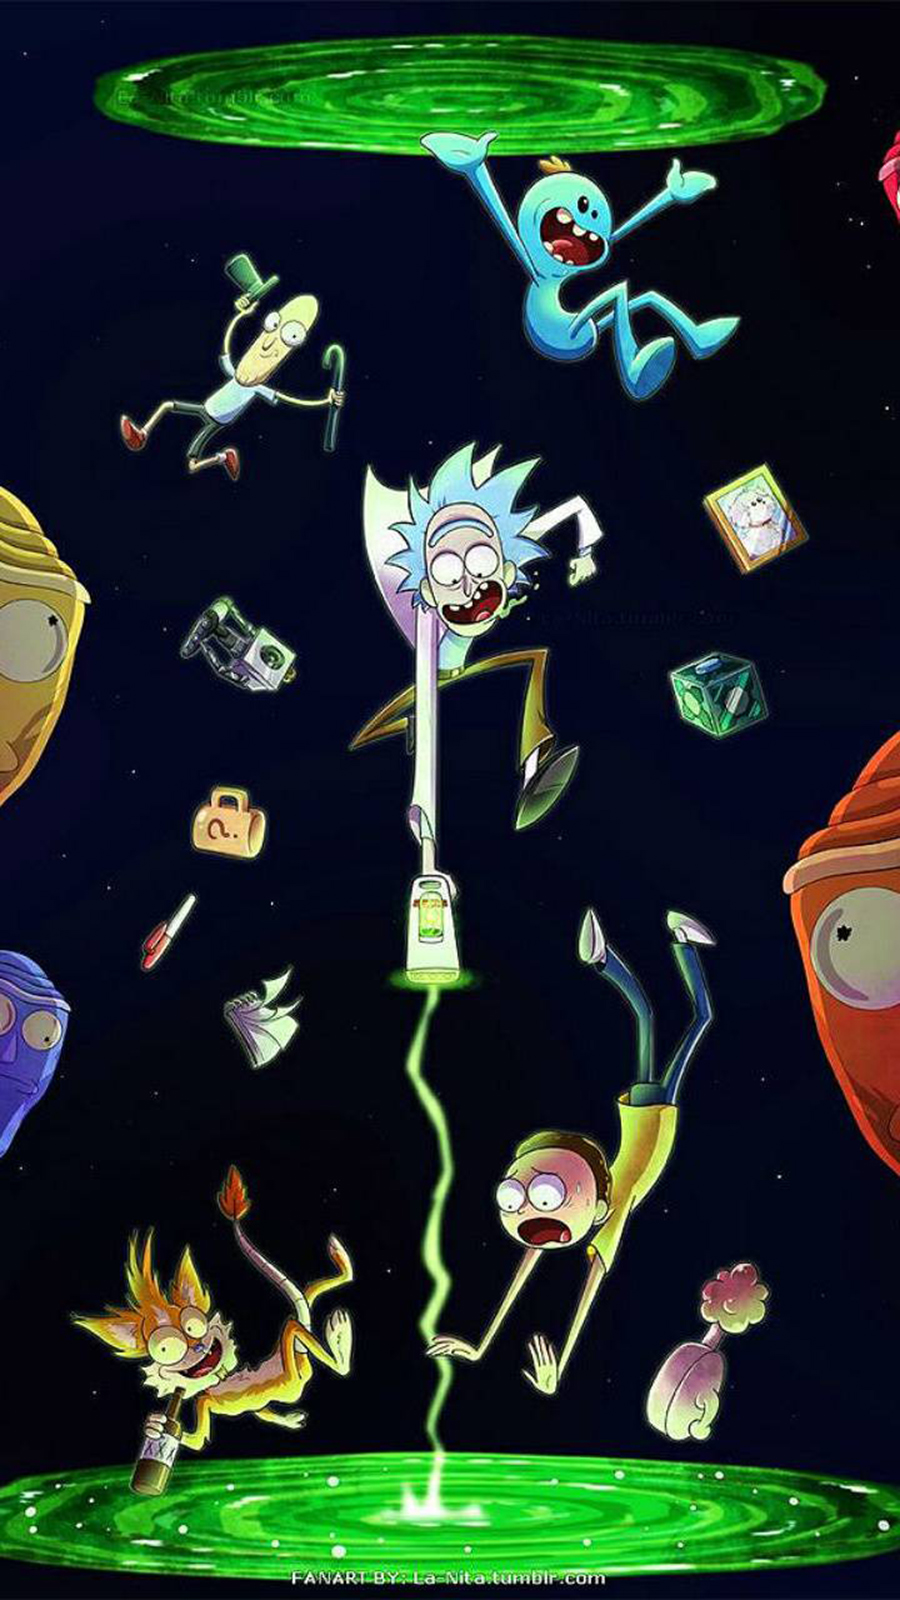 Cartoon Rick and Morty Wallpapers Now Download For Your Device